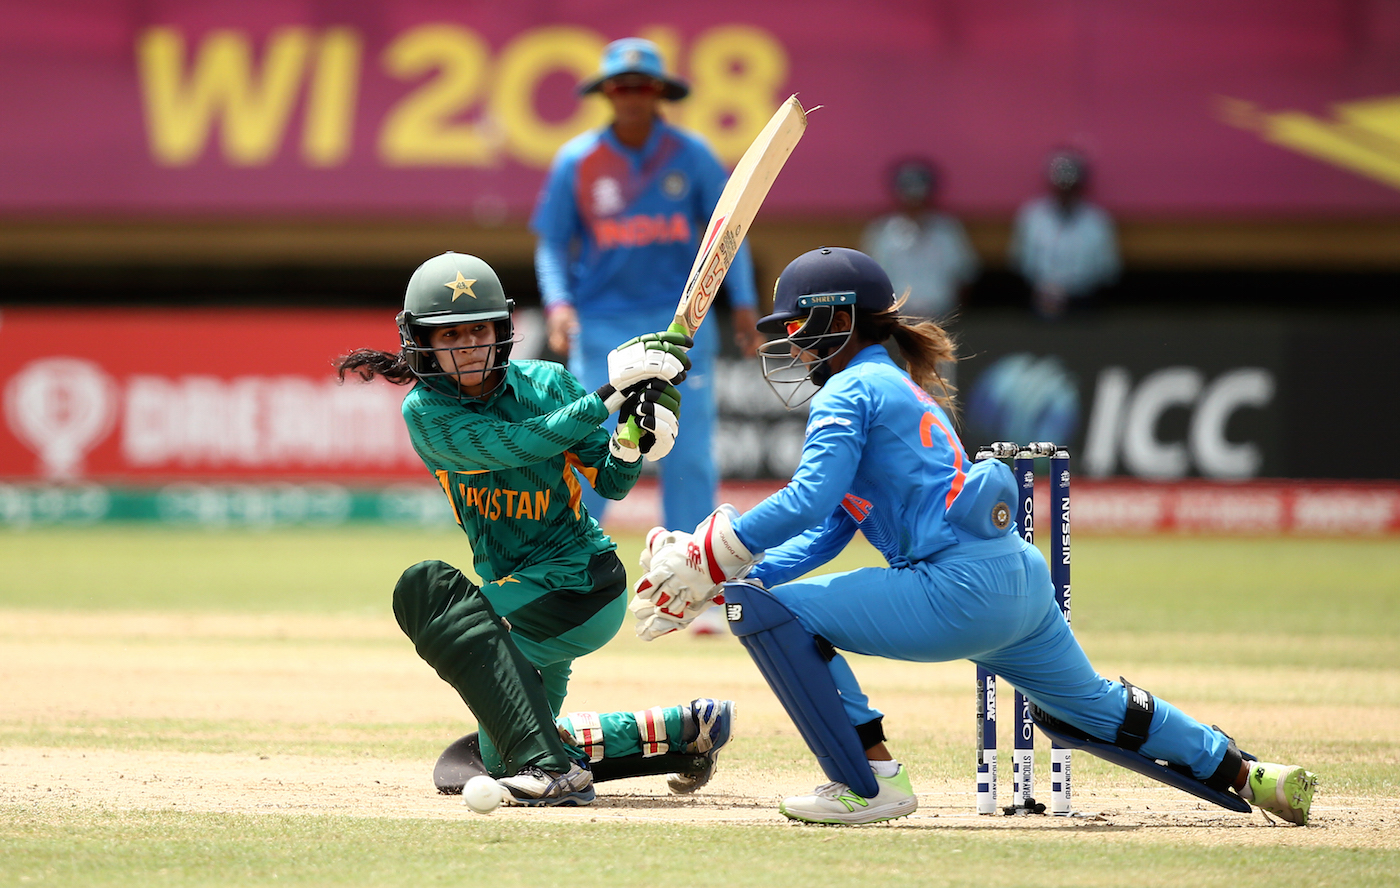 ICC Women's World T20I: Mithali Raj's Fifty Guides India To Convincing Win